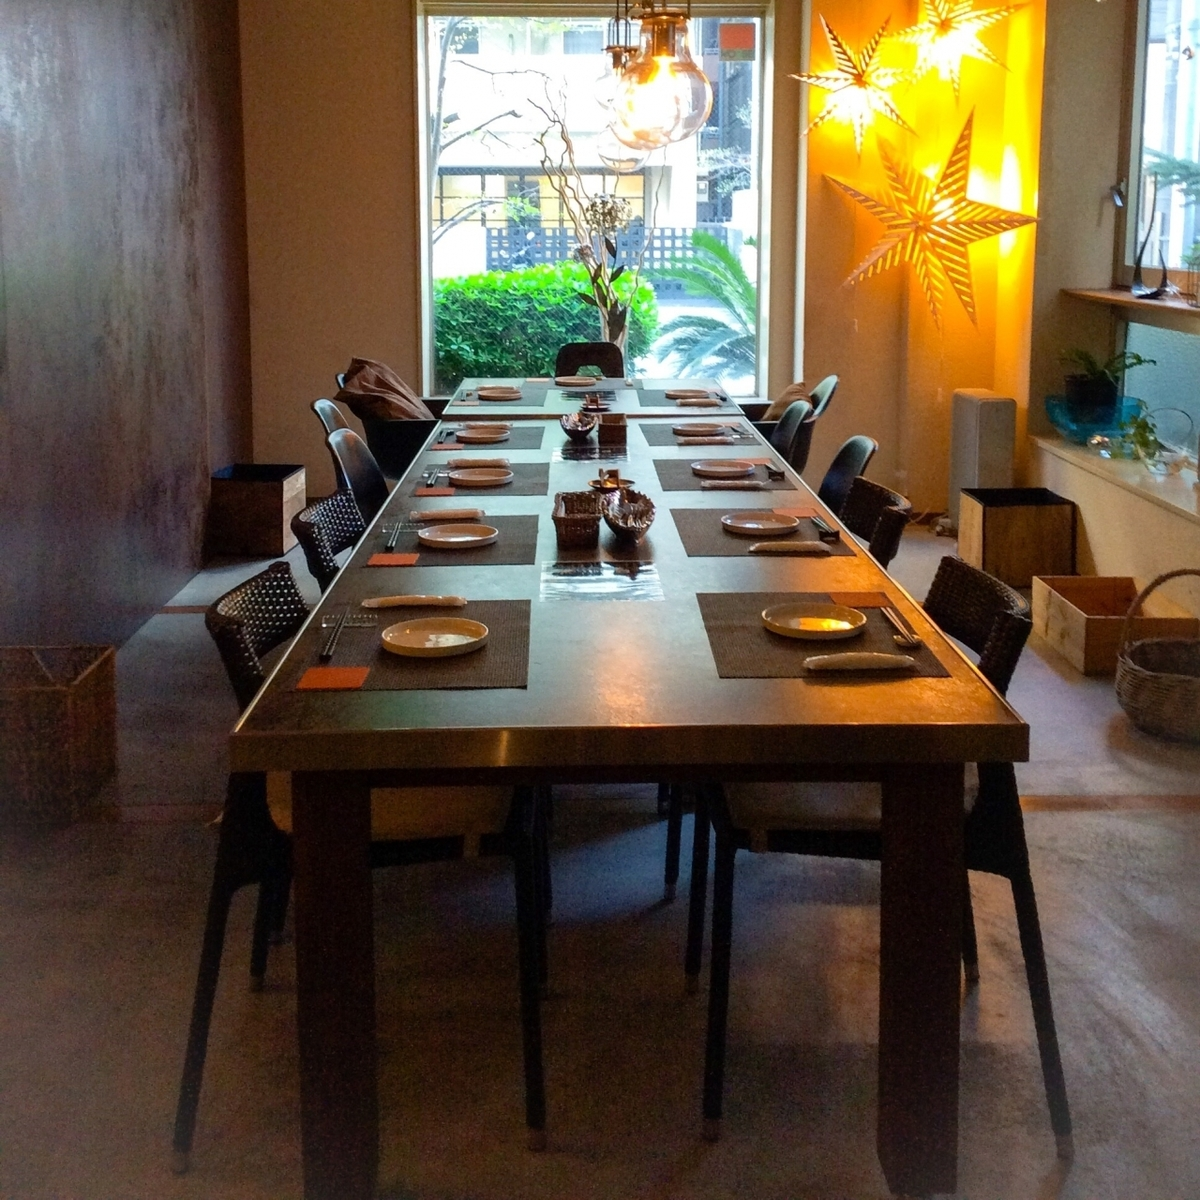 A table seat that is perfect for a small party